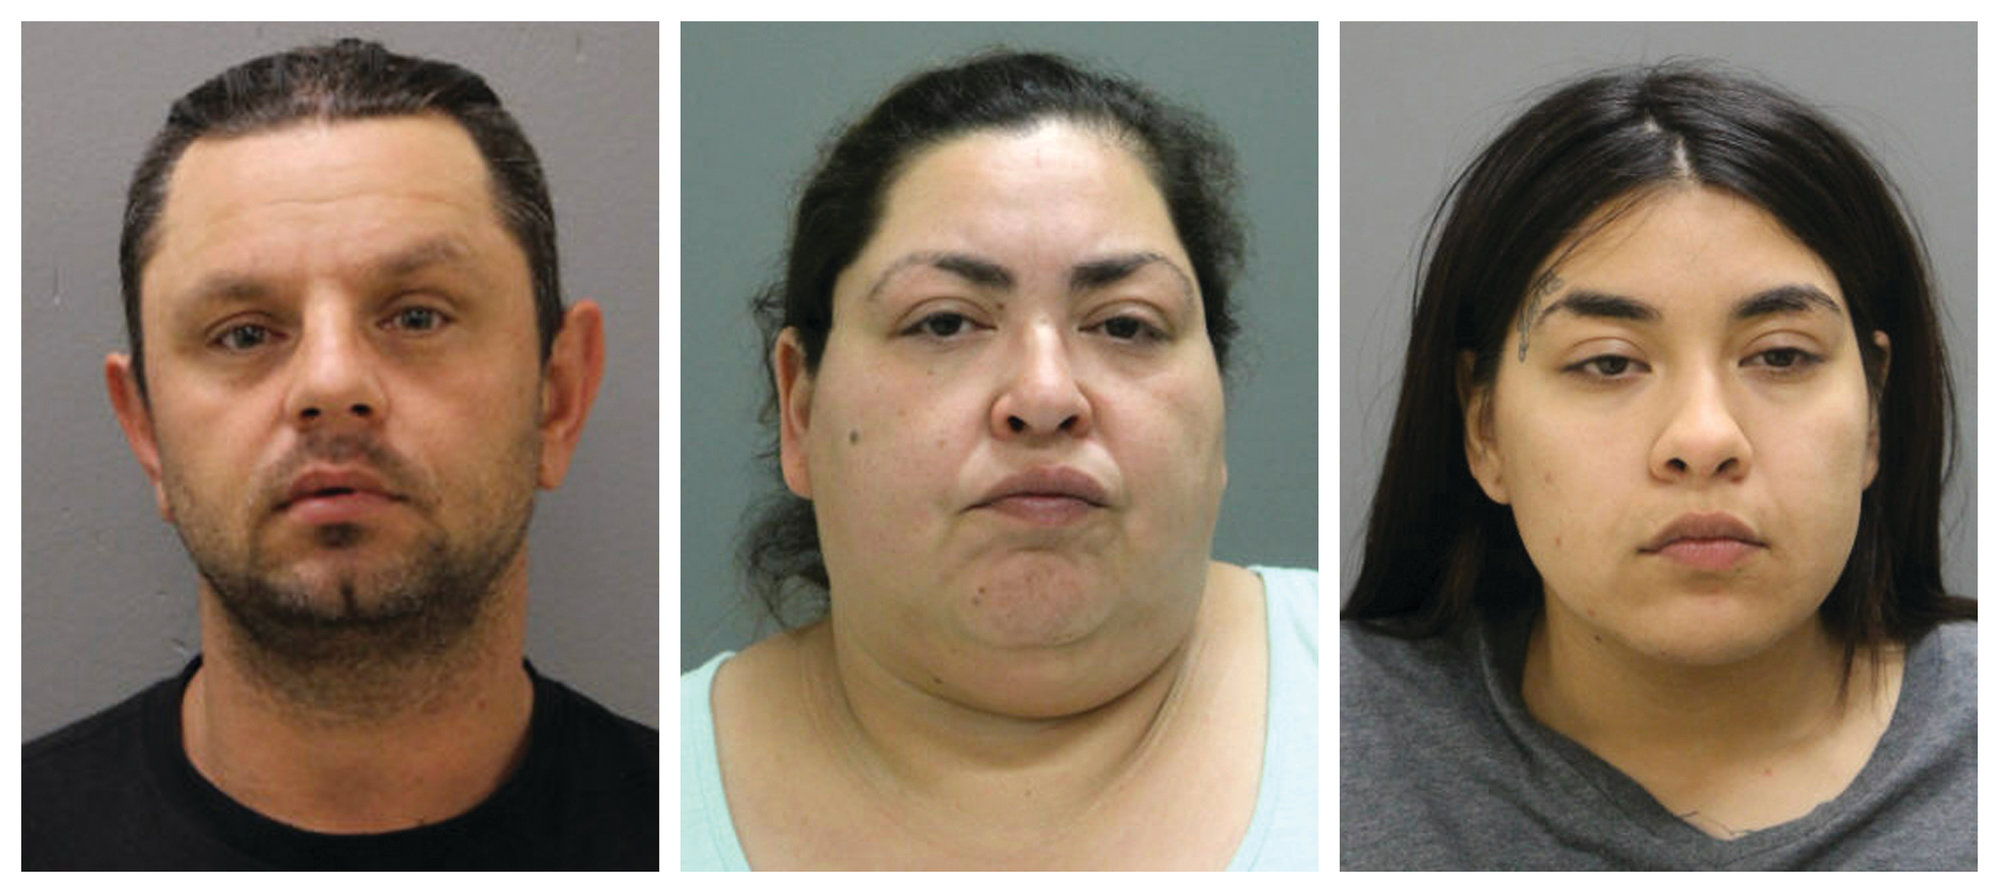 This combination of booking photos provided by the Chicago Police Department on May 16, 2019, shows from left, Pioter Bobak, 40; Clarisa Figueroa, 46; and Desiree Figueroa, 24. Charges against them come three weeks after 19-year-old Marlen Ochoa-Lopez disappeared and a day after her body was discovered in a garbage can in the backyard of Clarissa Figueroa's home in Chicago's Southwest Side.